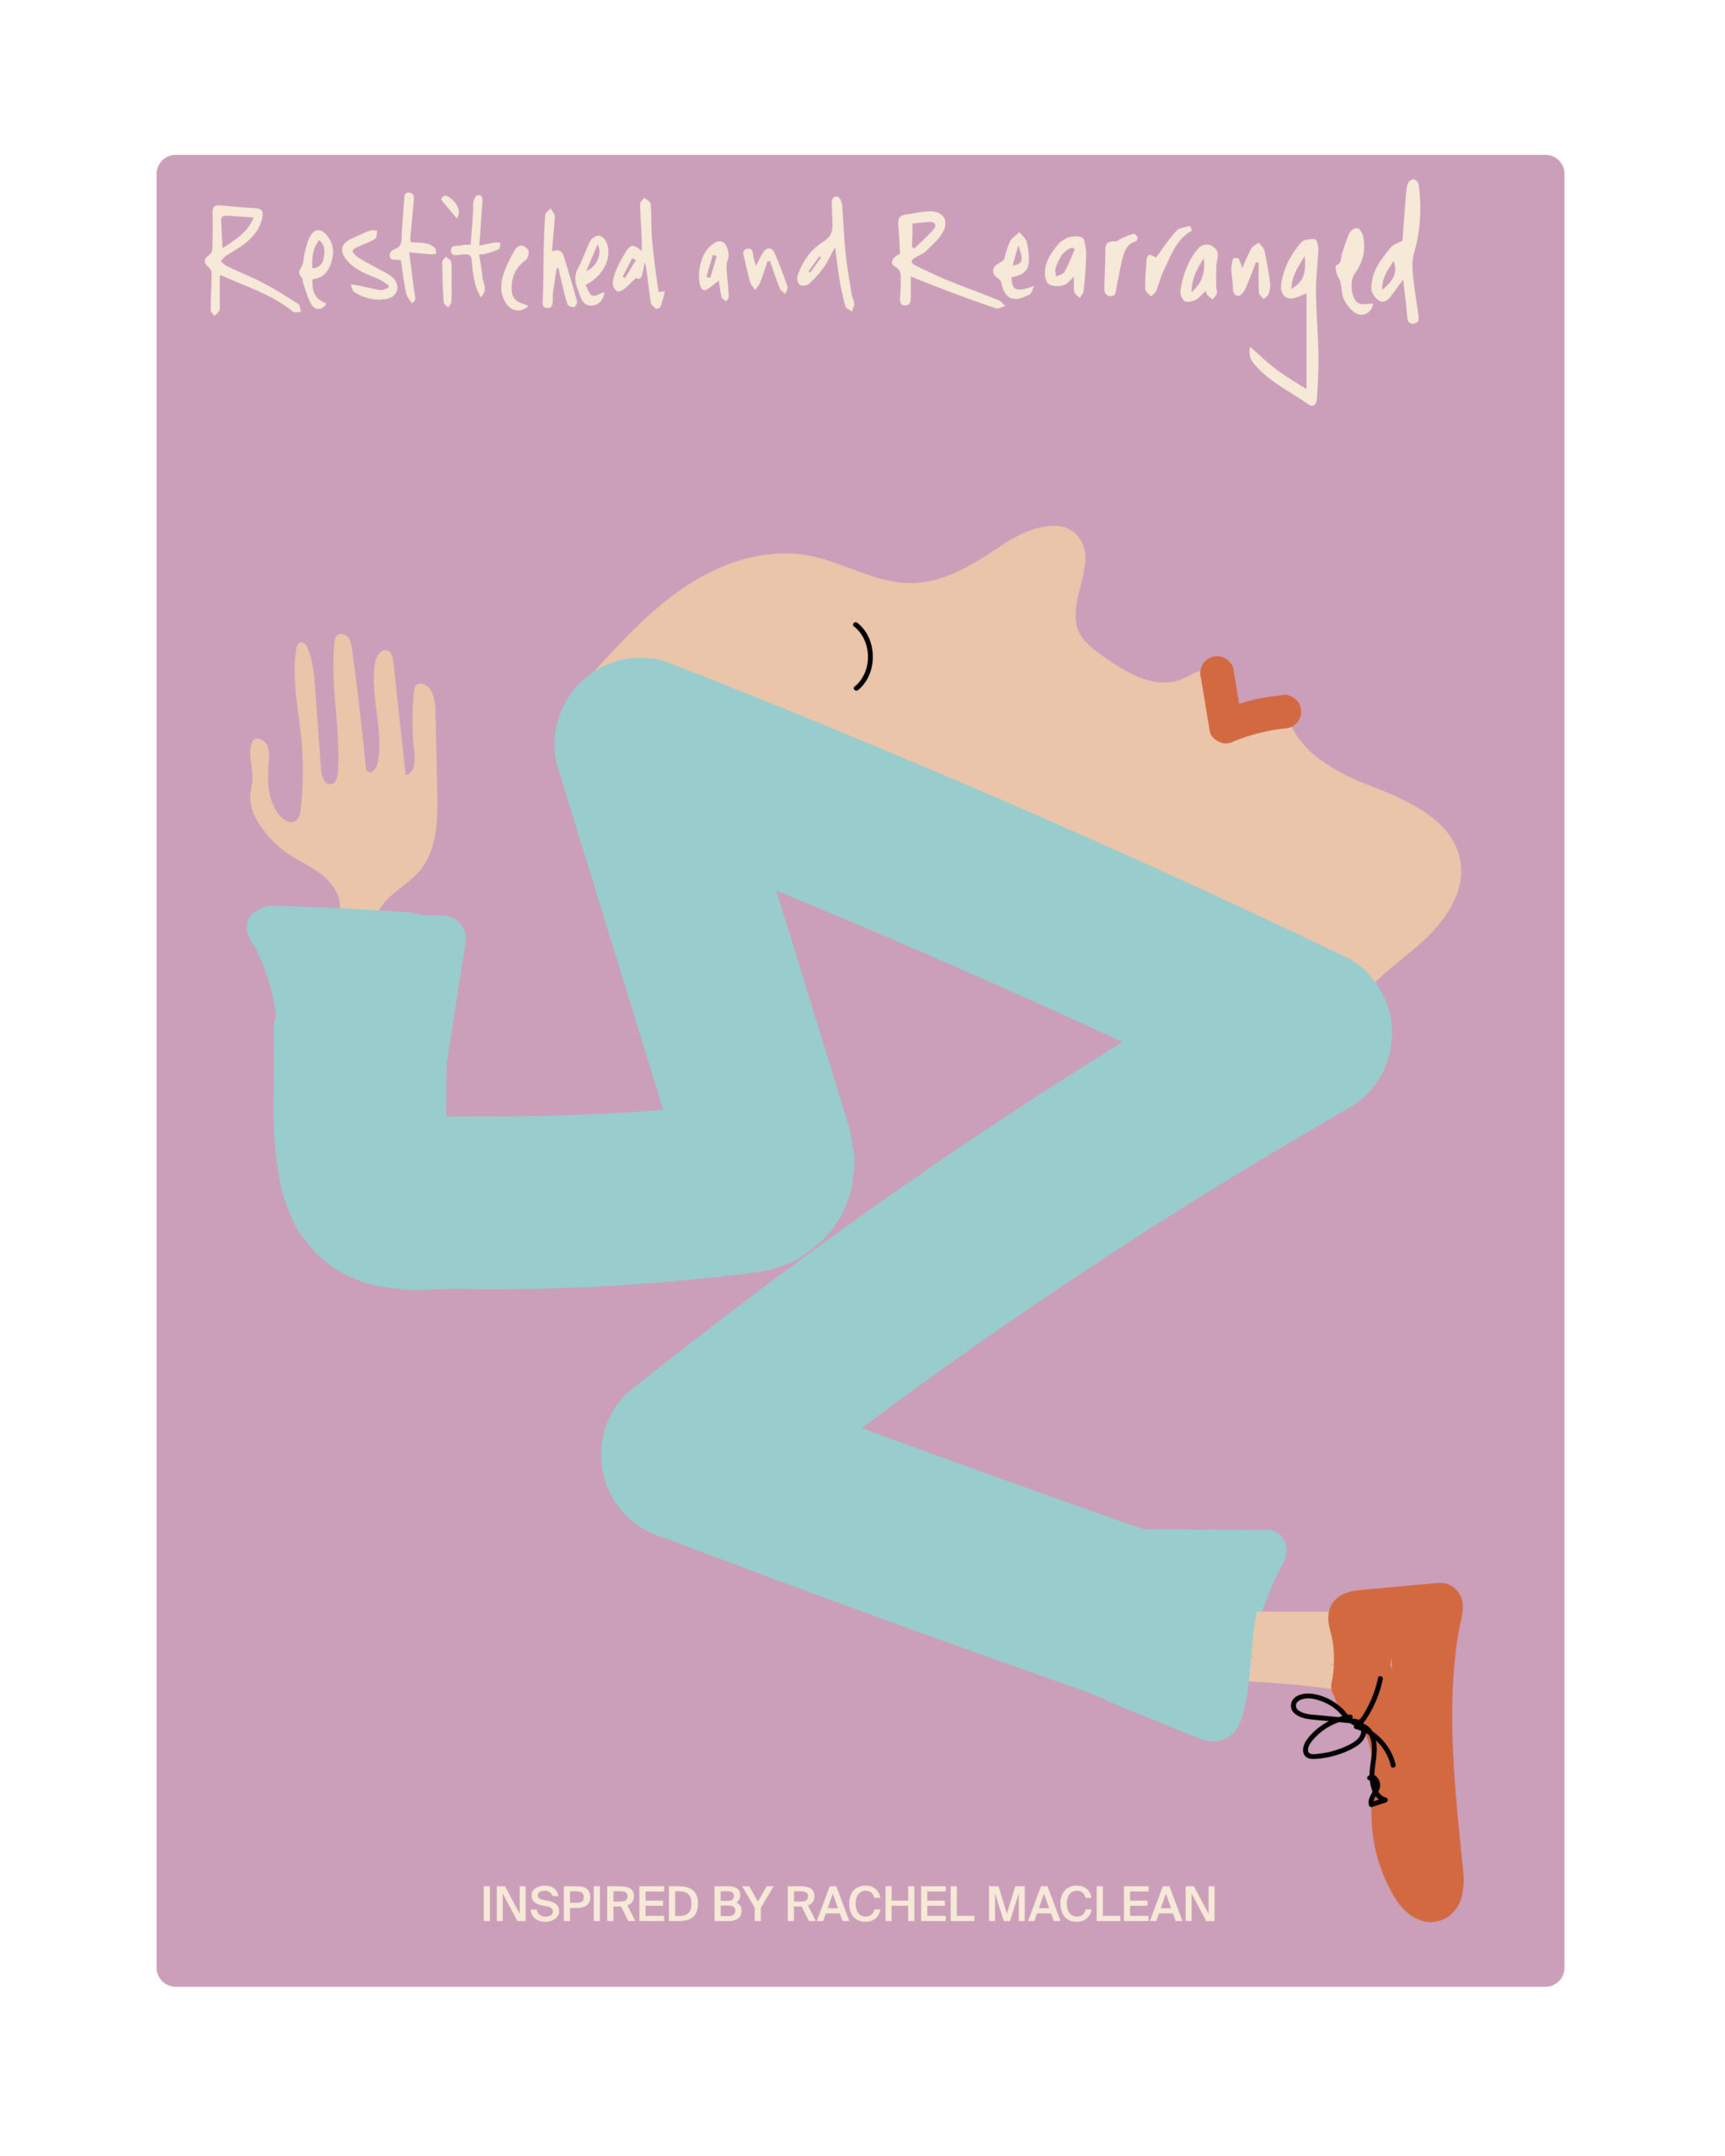 RESTITCHED AND REARRANGED